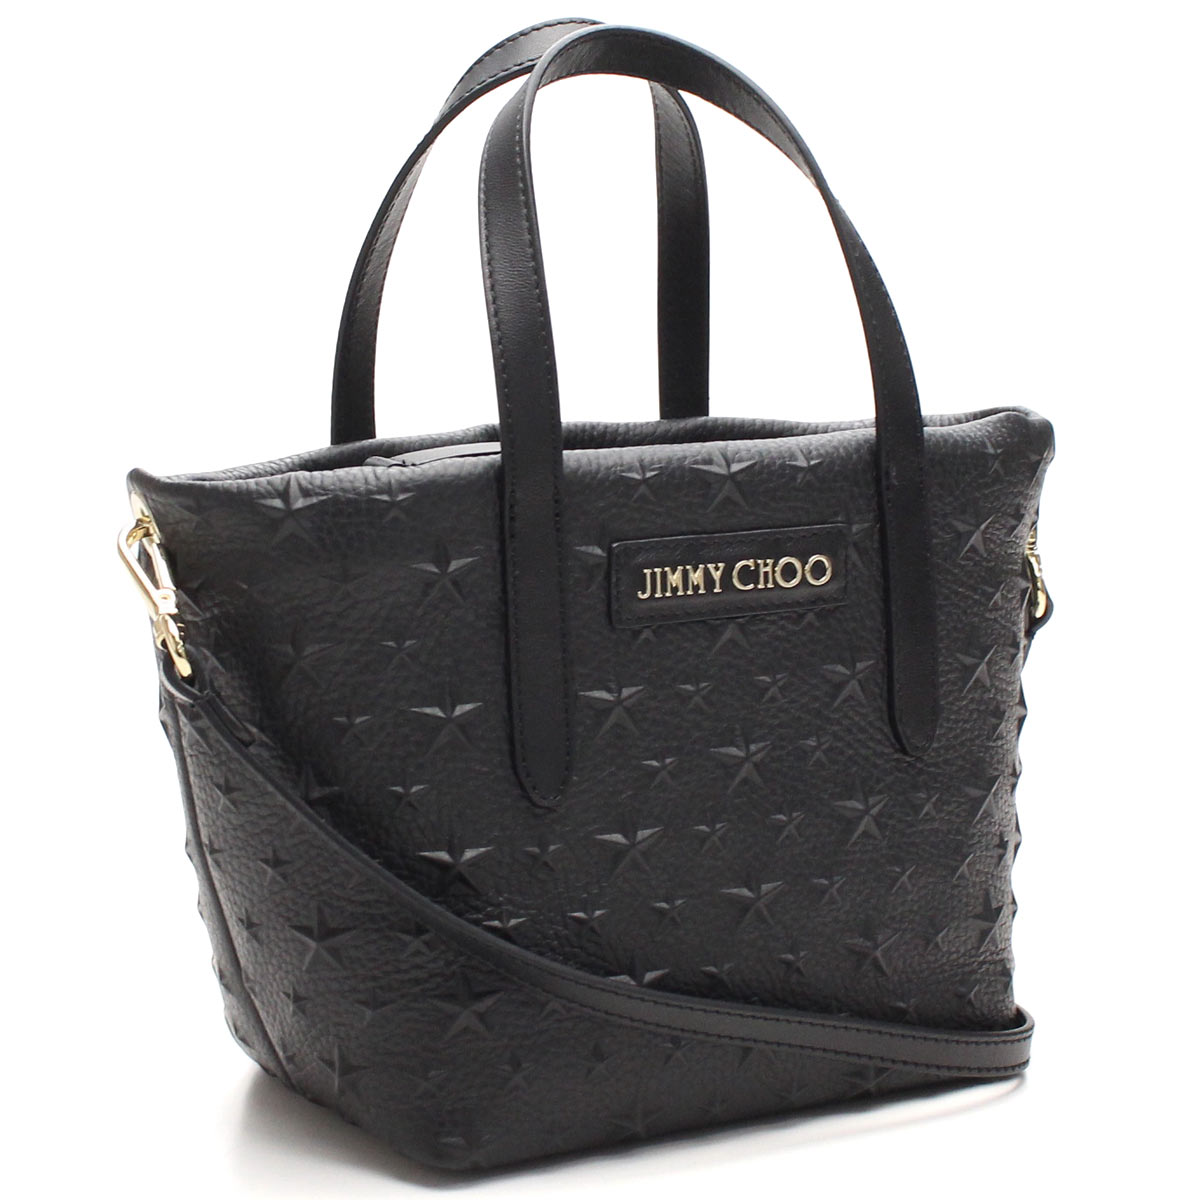 Hit The Total Brand Whole Jimmy Choo Handbag Minisara Emg Black Taxfree Send By Ems Authentic A New Item Rakuten